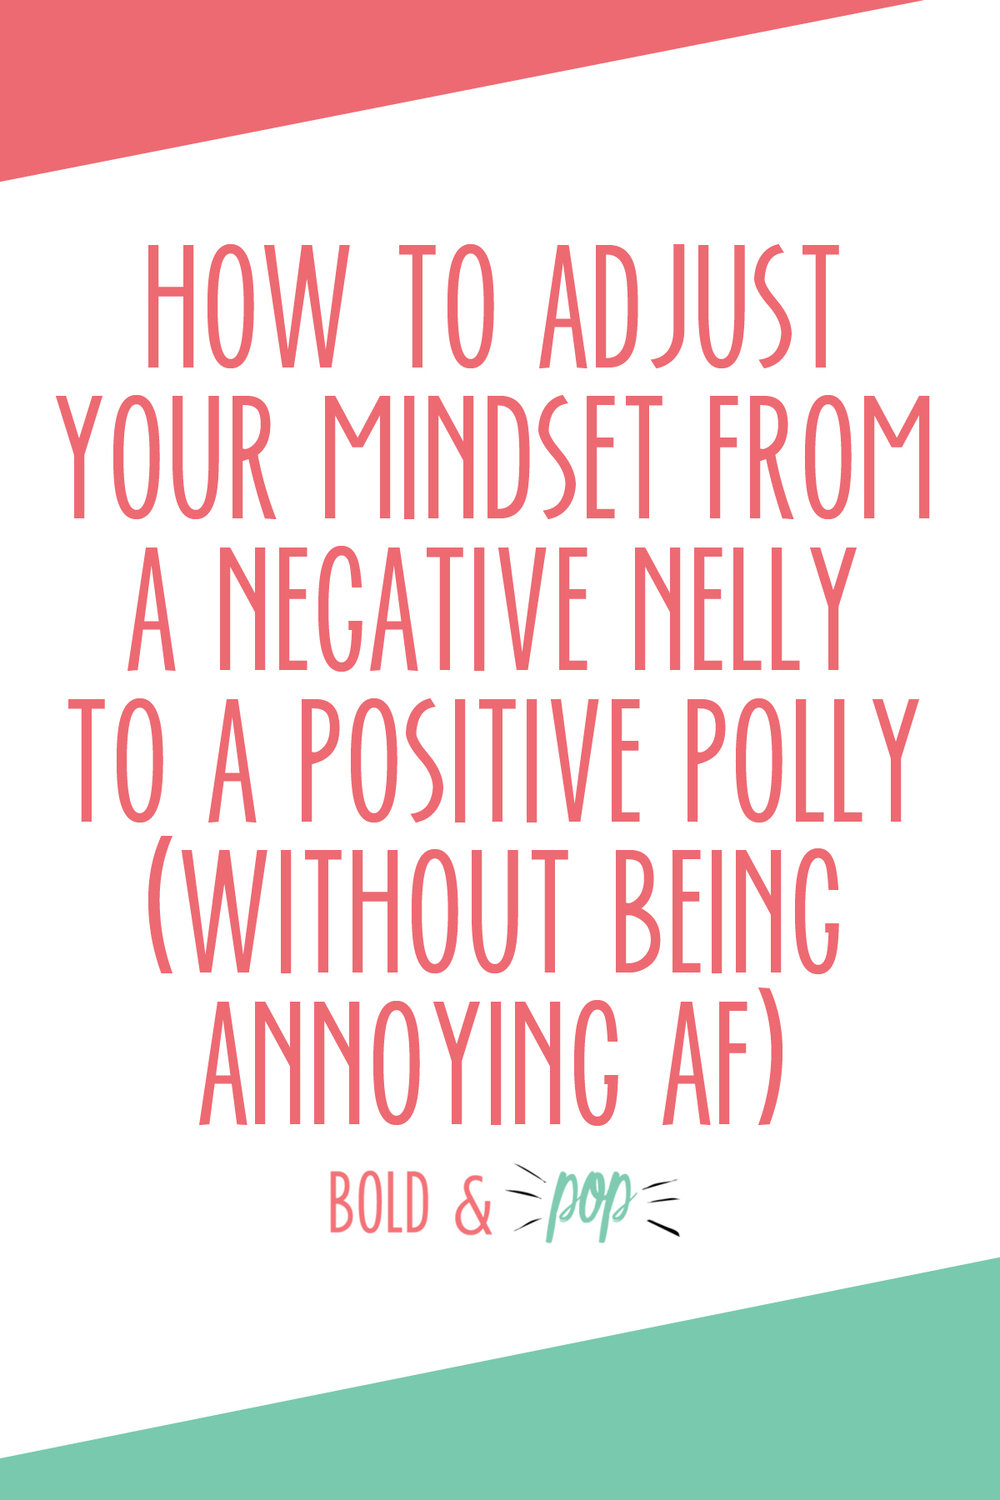 Bold & Pop : How to Adjust your Mindset from a Negative Nelly to a Positive Polly (without being annoying AF)